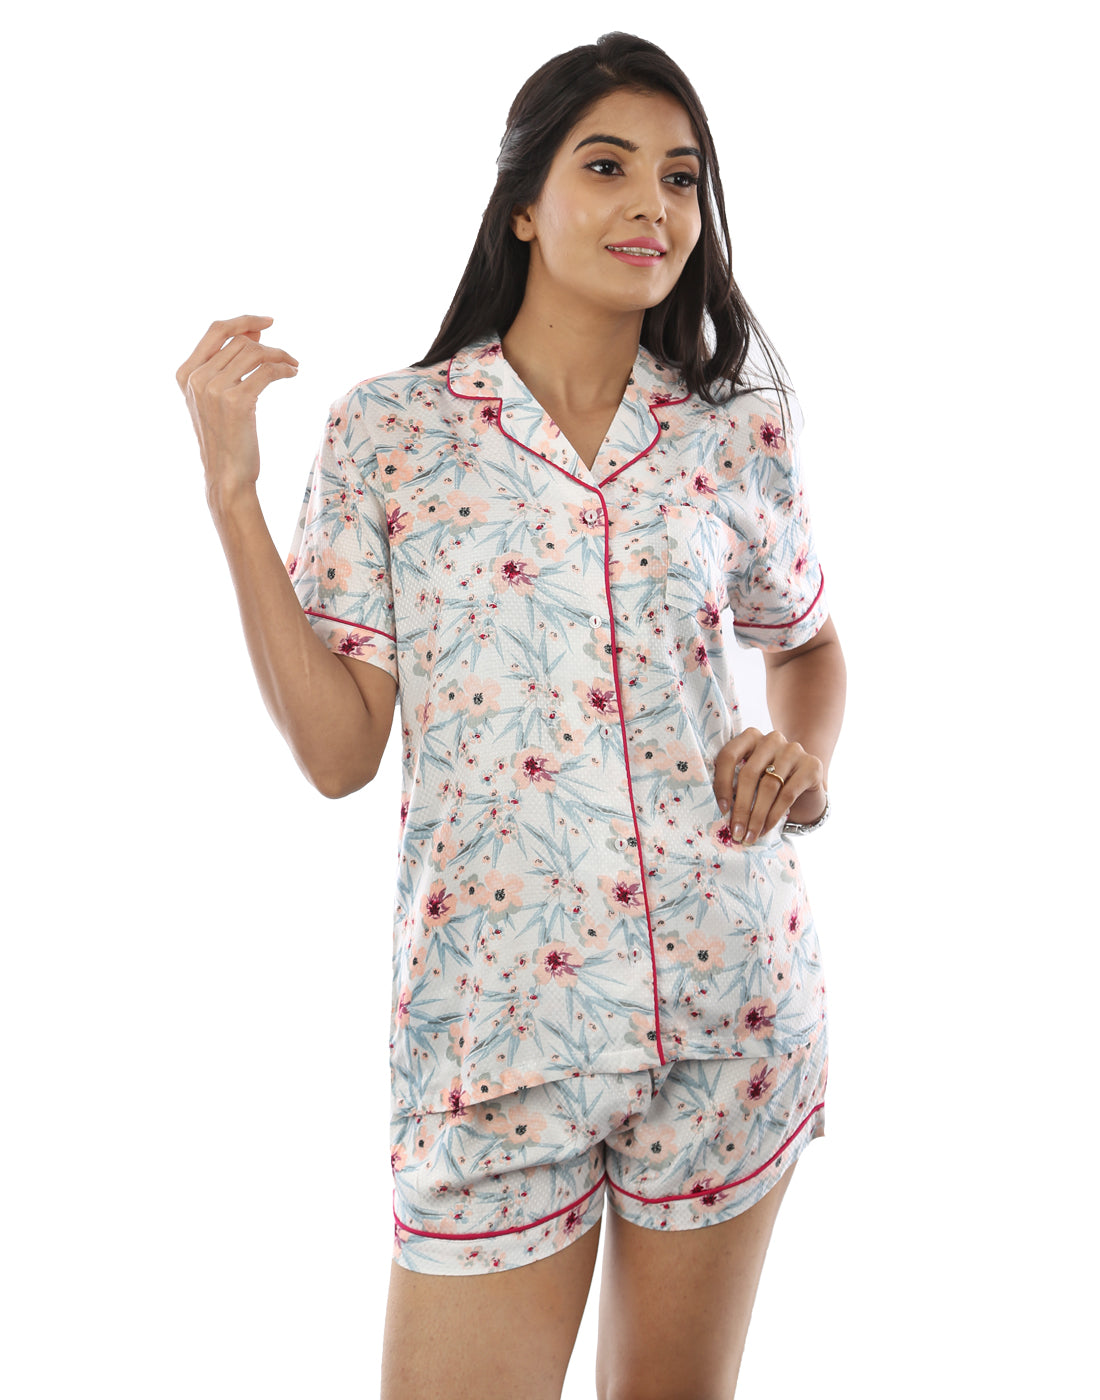 Winter Peachy Floral Shorty Pj set